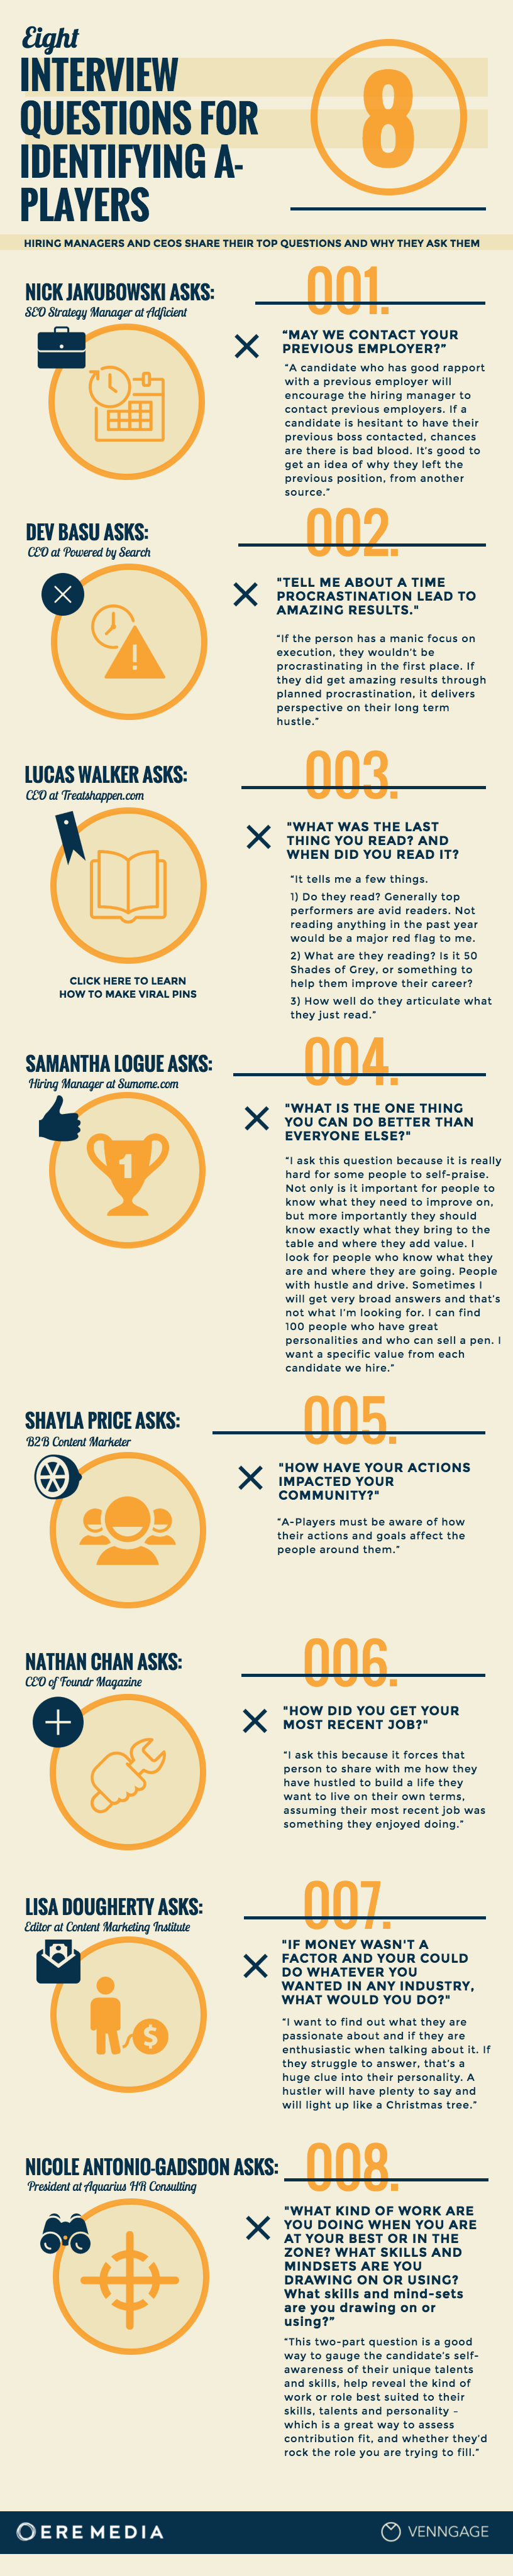 Infographic: Interview Questions for A-Players   Venngage